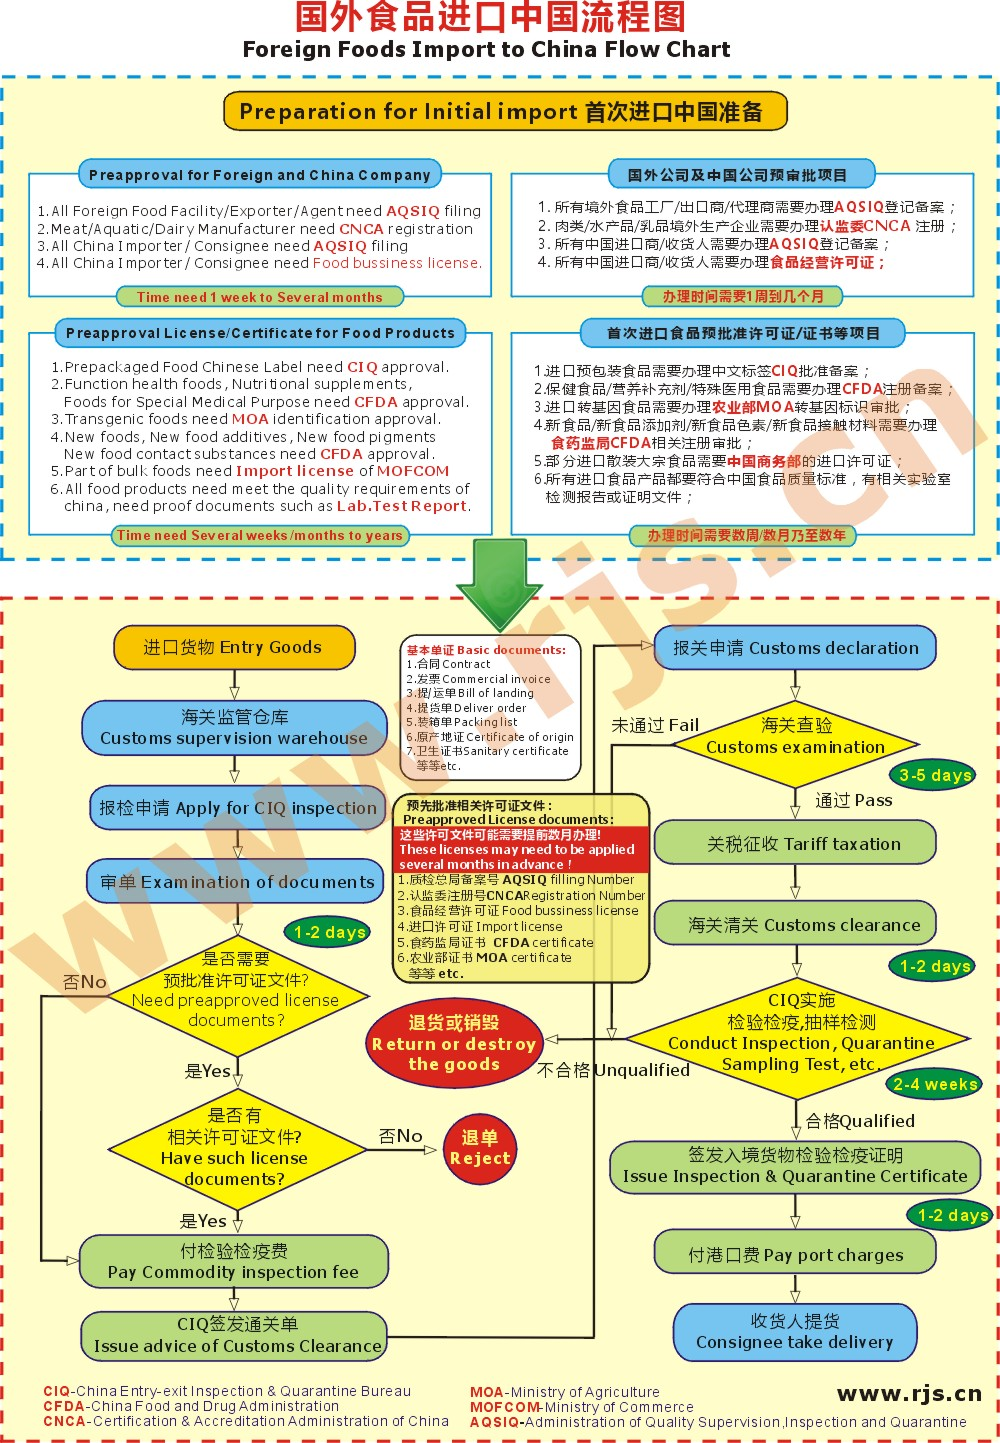 Foreign food export to china process flow chart china fdasfda foreign food export to china process flow chart nvjuhfo Gallery